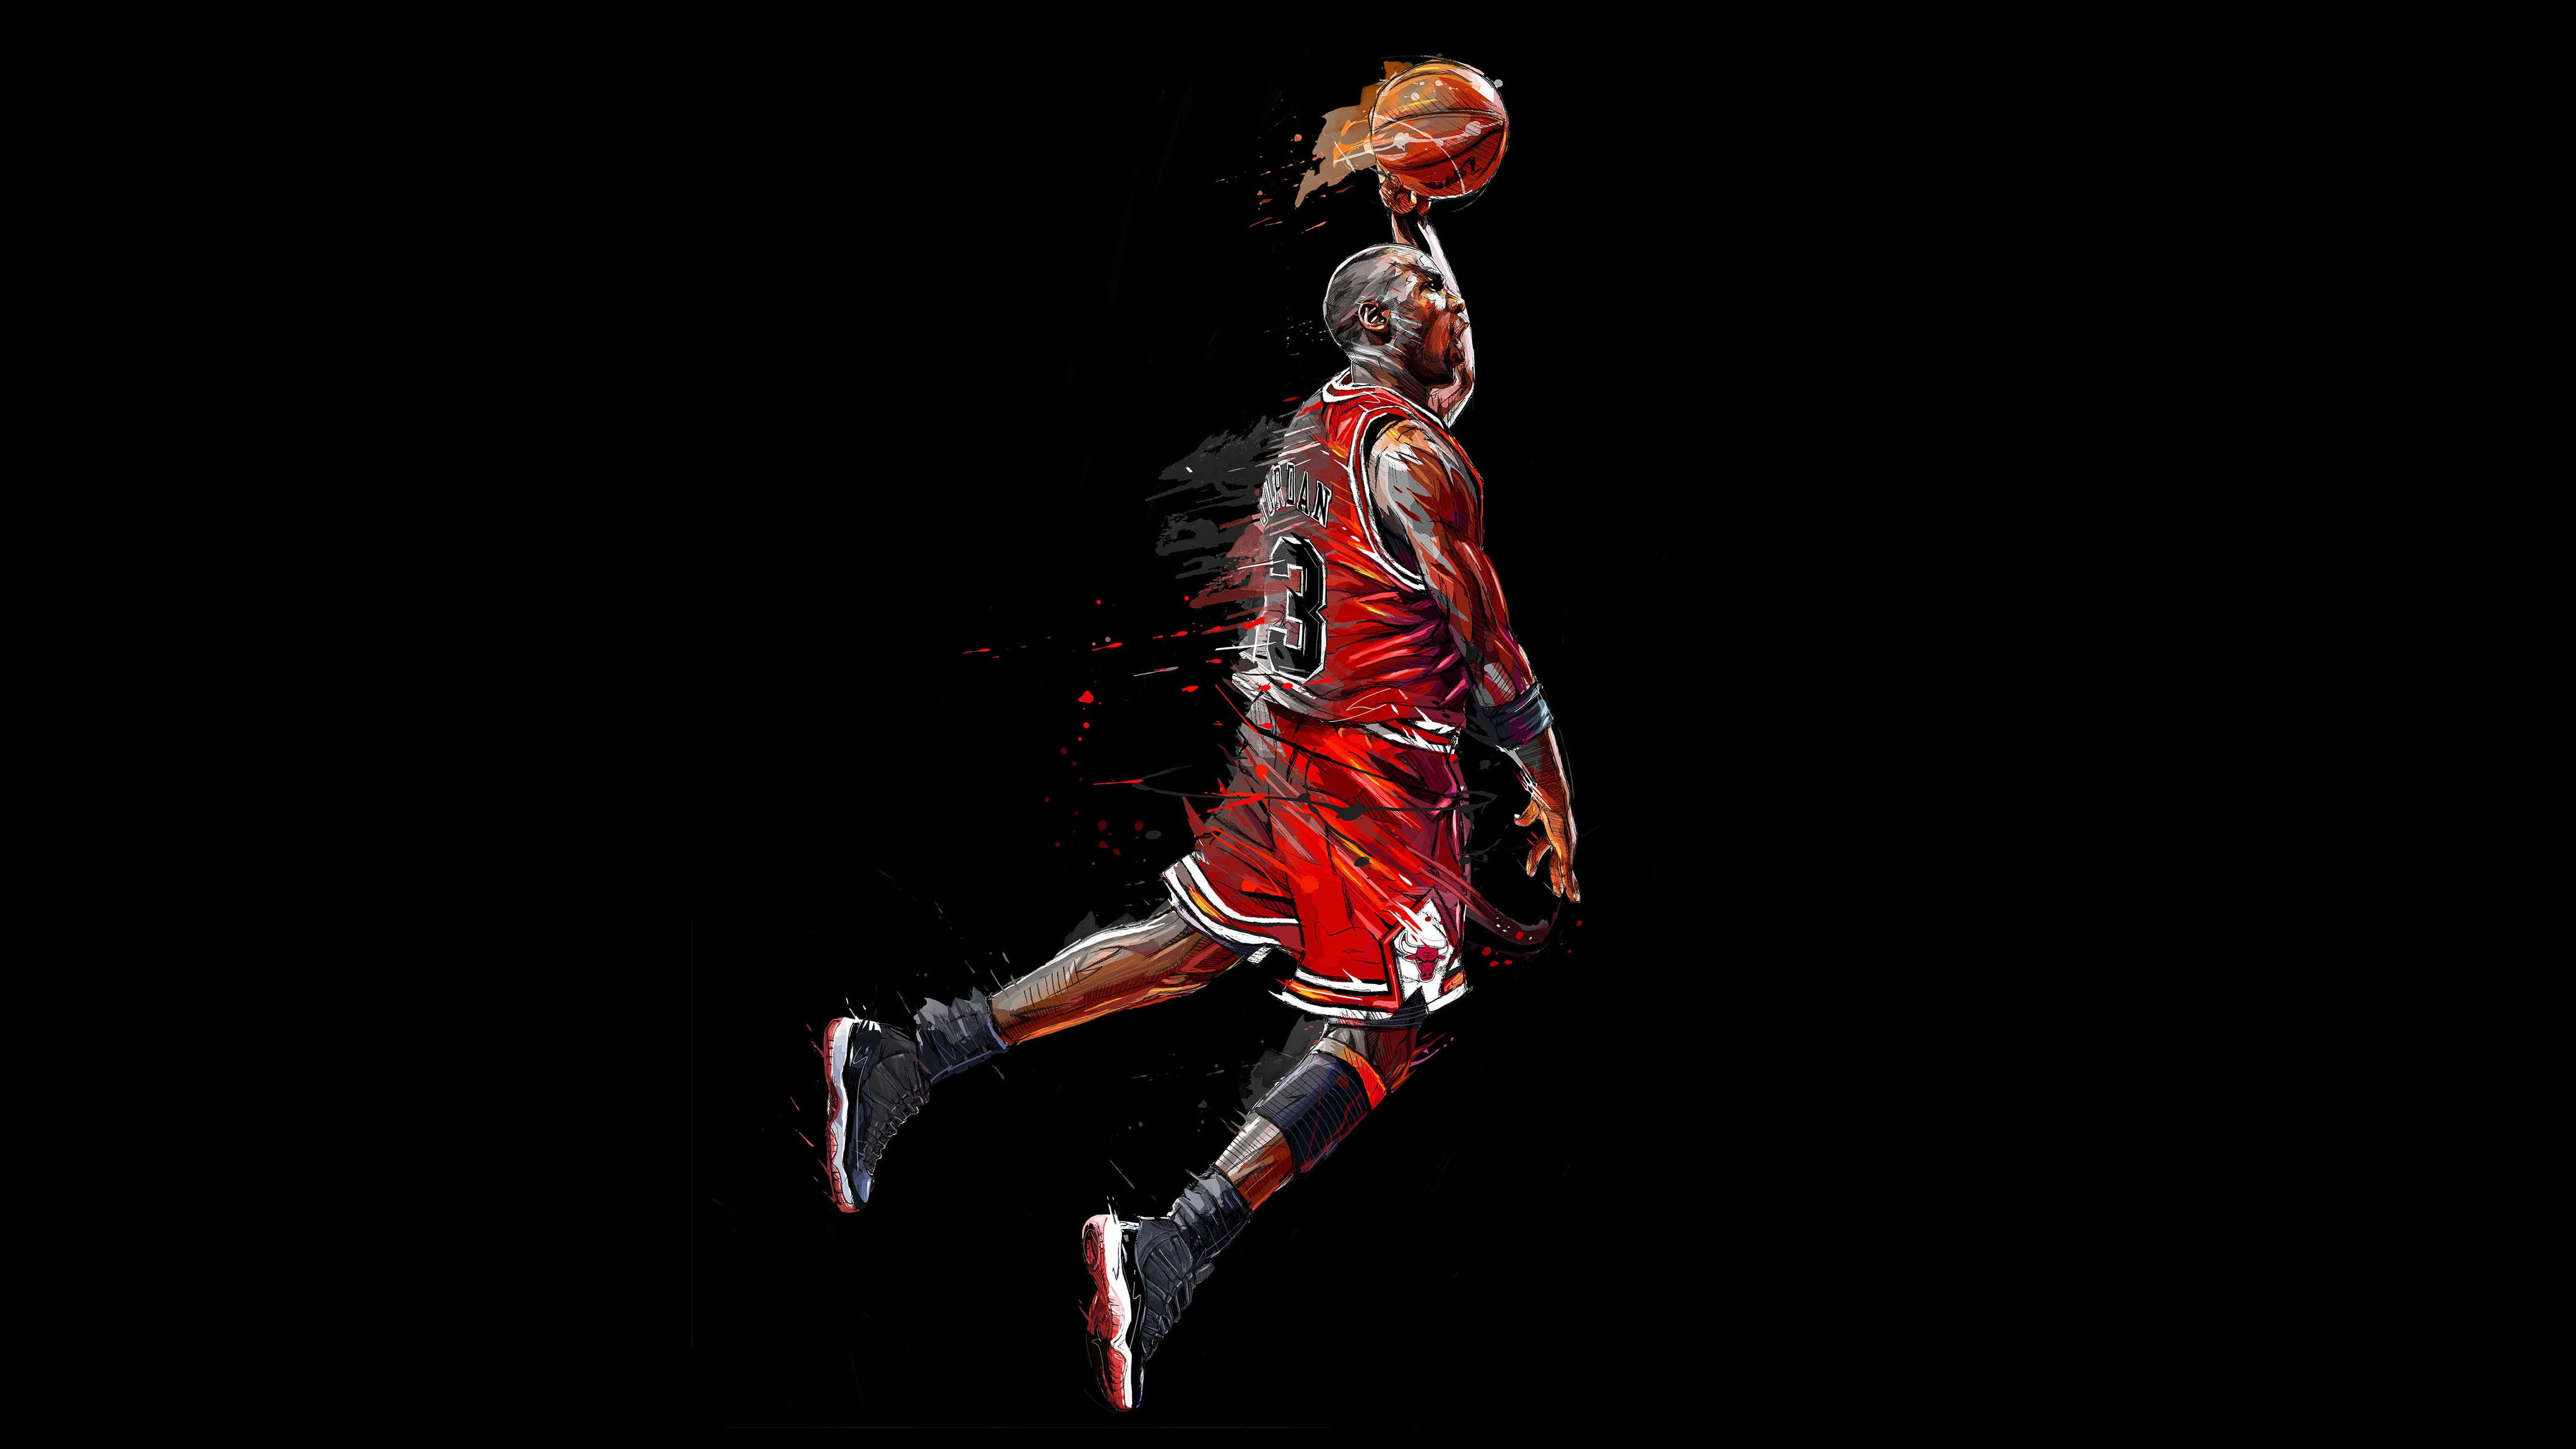 4k Basketball Player Chicago Bulls Michael Jordan 4k Wallpaper Hdwallpaper Desktop In 2020 Michael Jordan Basketball Players Michael Jordan Basketball